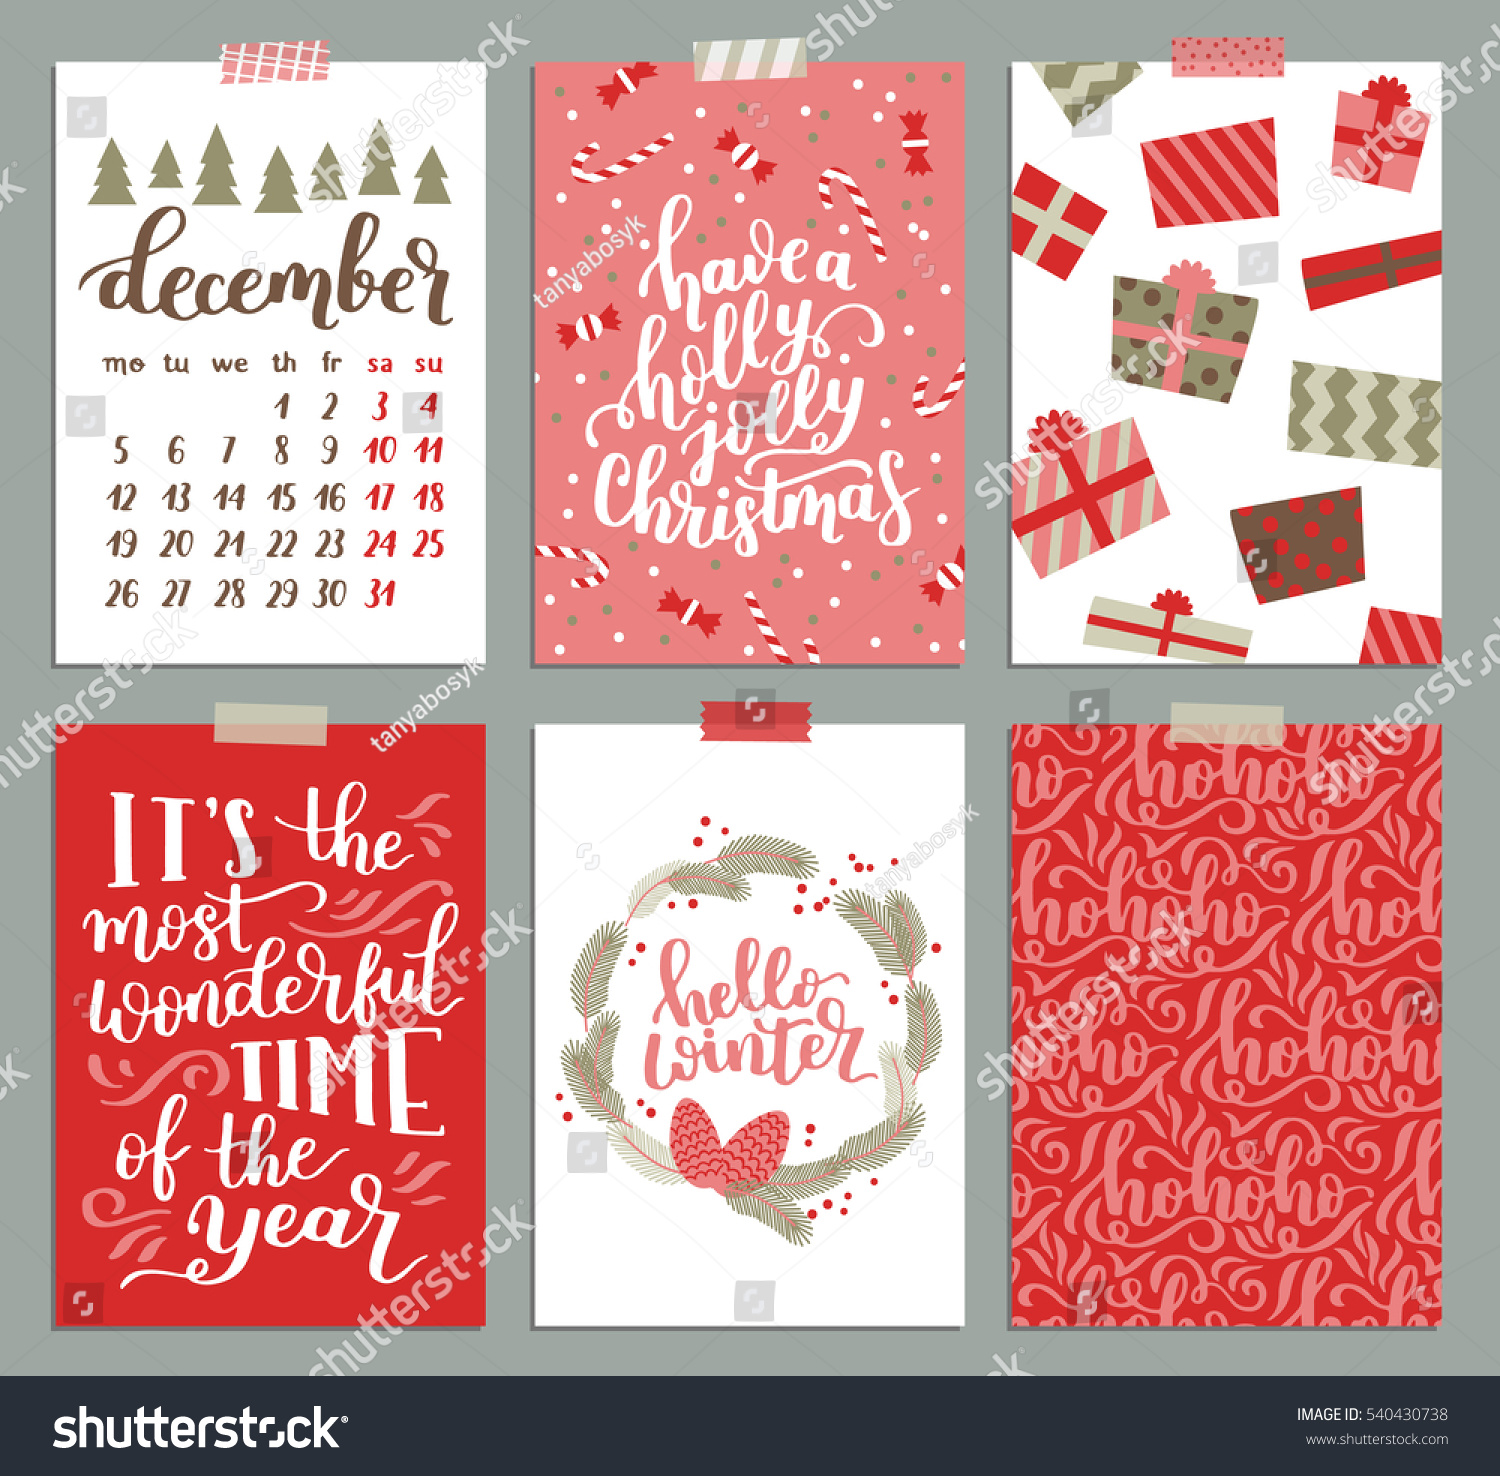 collection of christmas poster templates christmas set of collection of christmas poster templates christmas set of christmas greeting cards bright colors